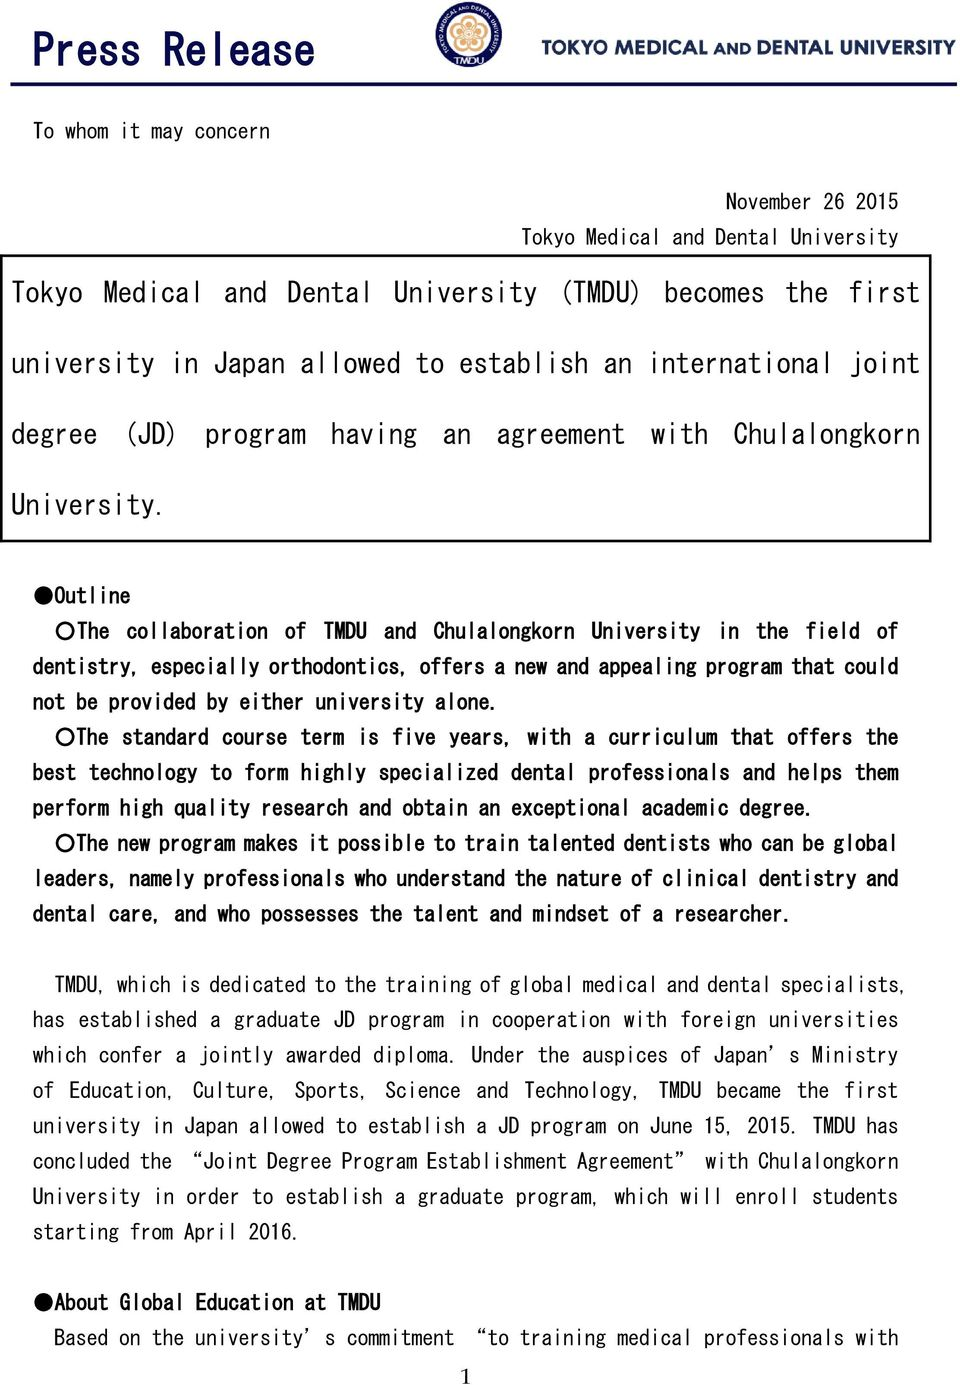 Outline The collaboration of TMDU and Chulalongkorn University in the field of dentistry, especially orthodontics, offers a new and appealing program that could not be provided by either university